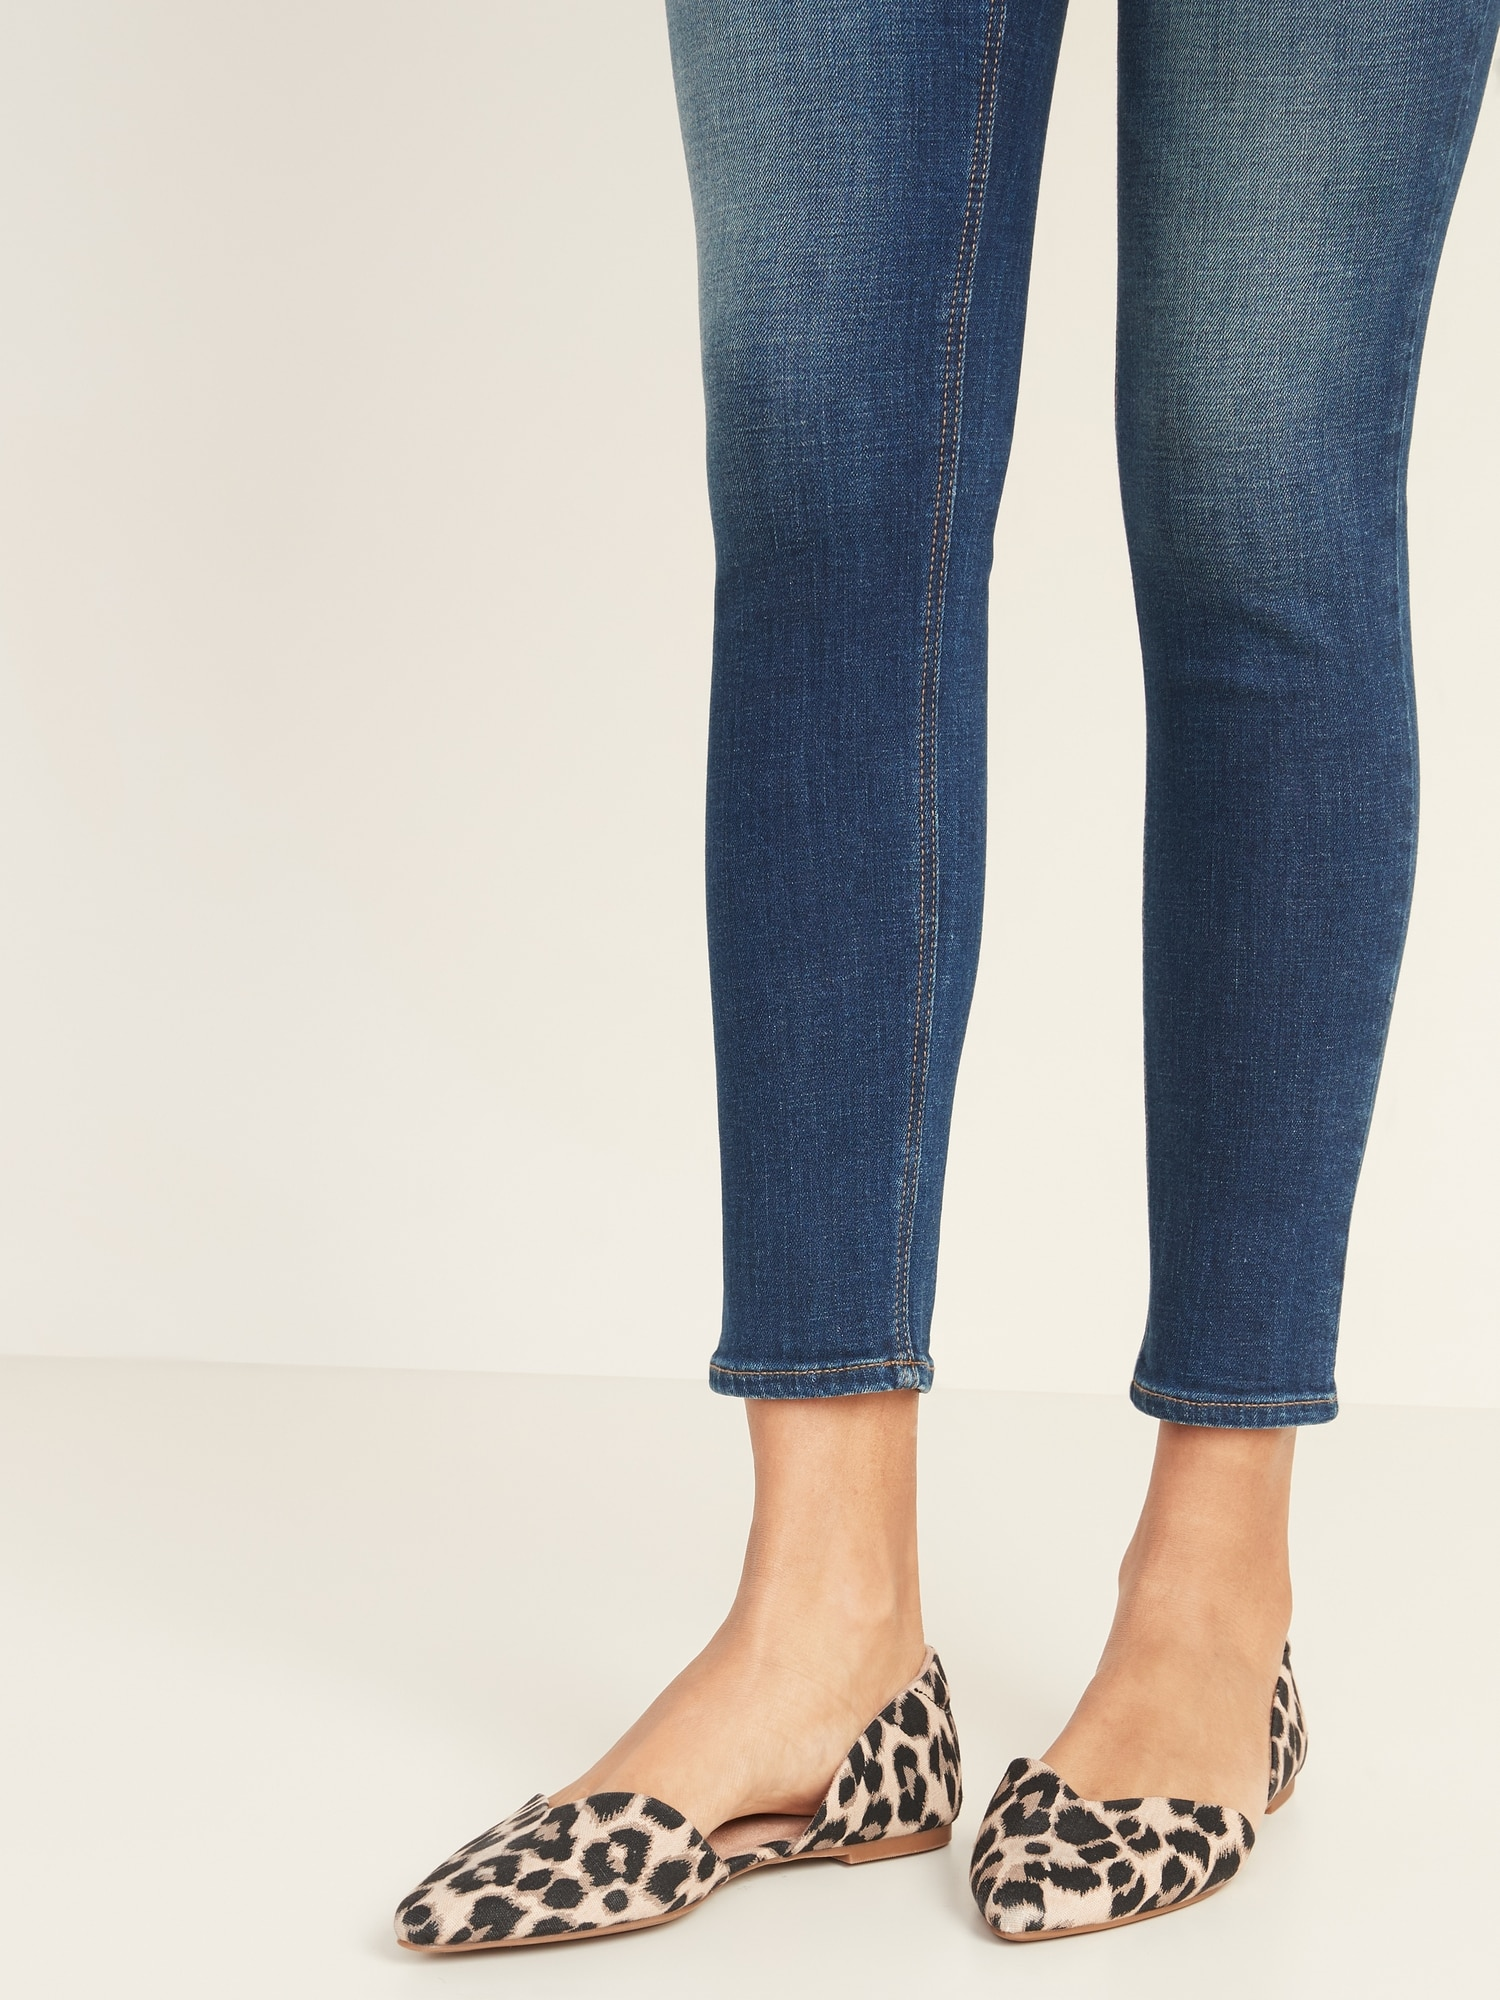 Textile Pointy-Toe D'Orsay Flats for